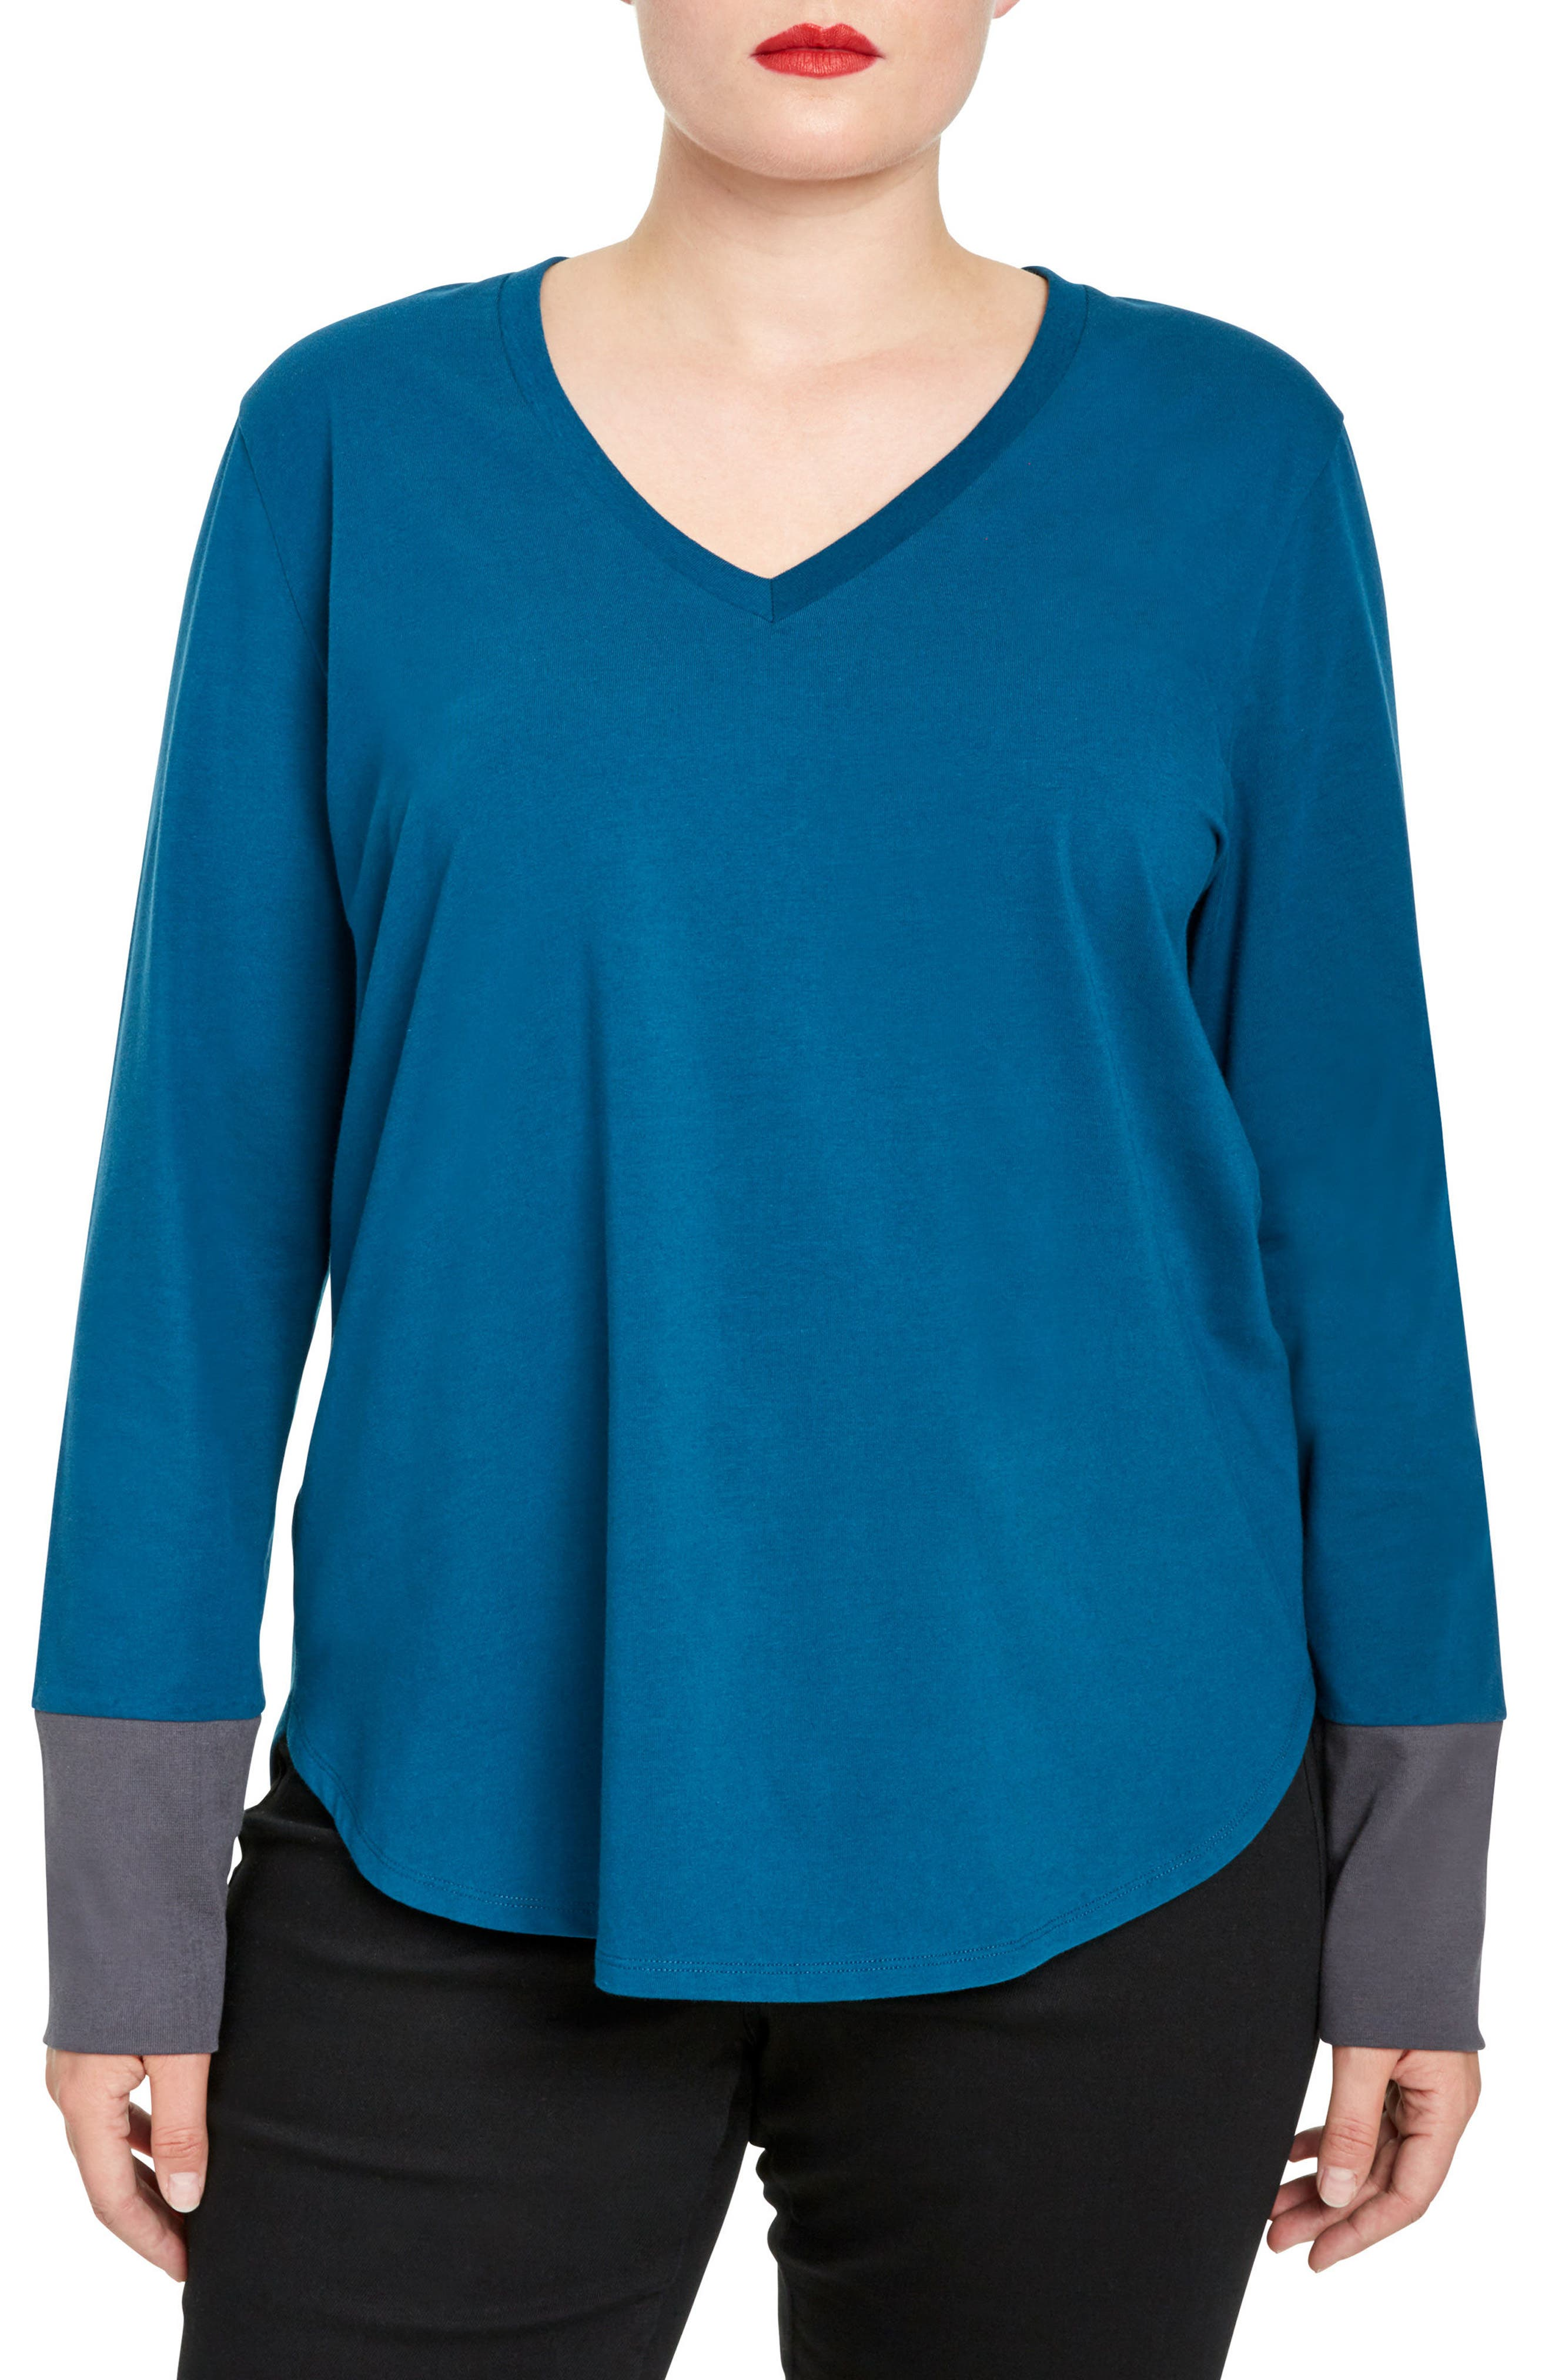 Alternate Image 1 Selected - UNIVERSAL STANDARD Rhine Colorblock Cuff Top (Plus Size)